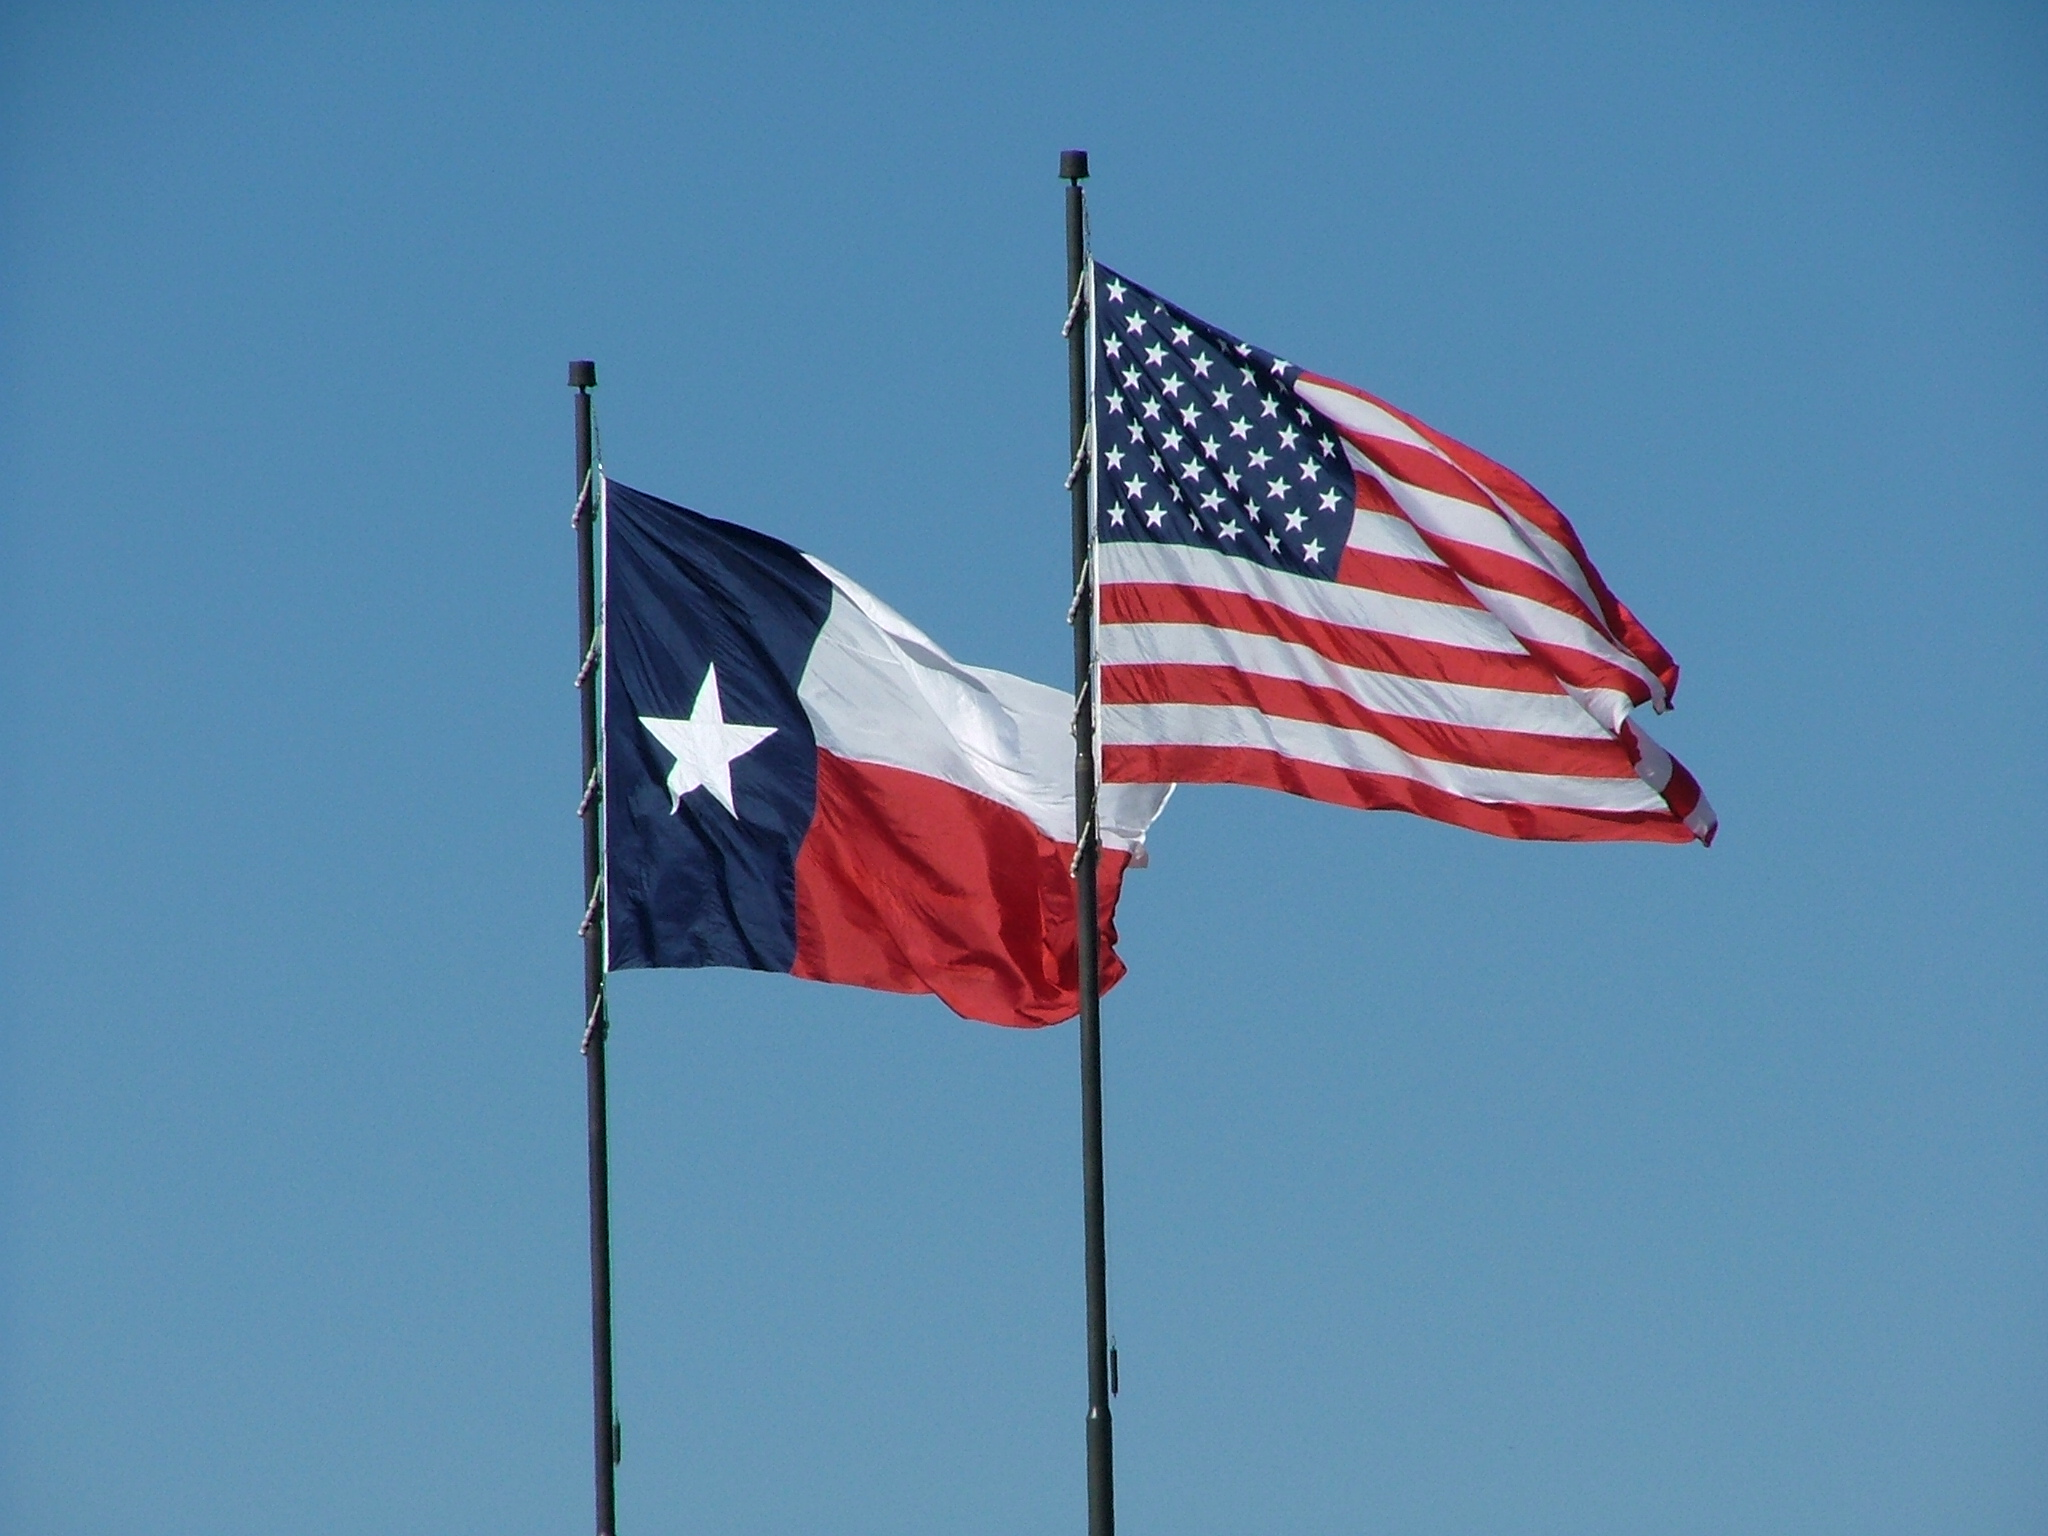 a665be11ae8 Texas And Us Flag Images - Best Picture Of Flag Imagesco.Org